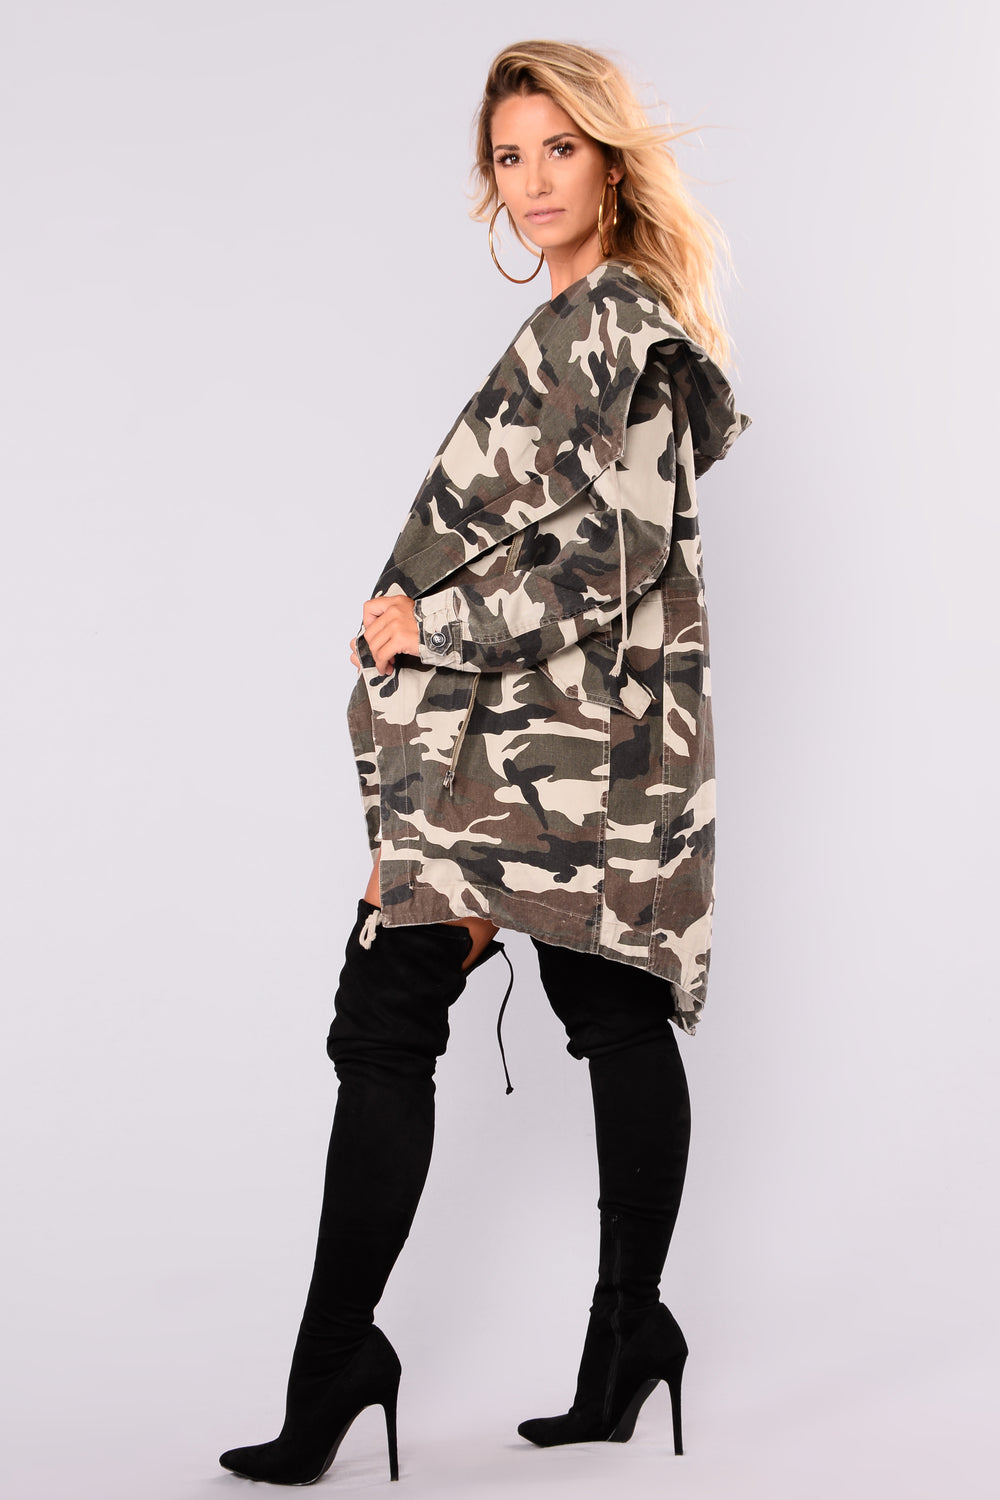 Your Command Jacket - Camo